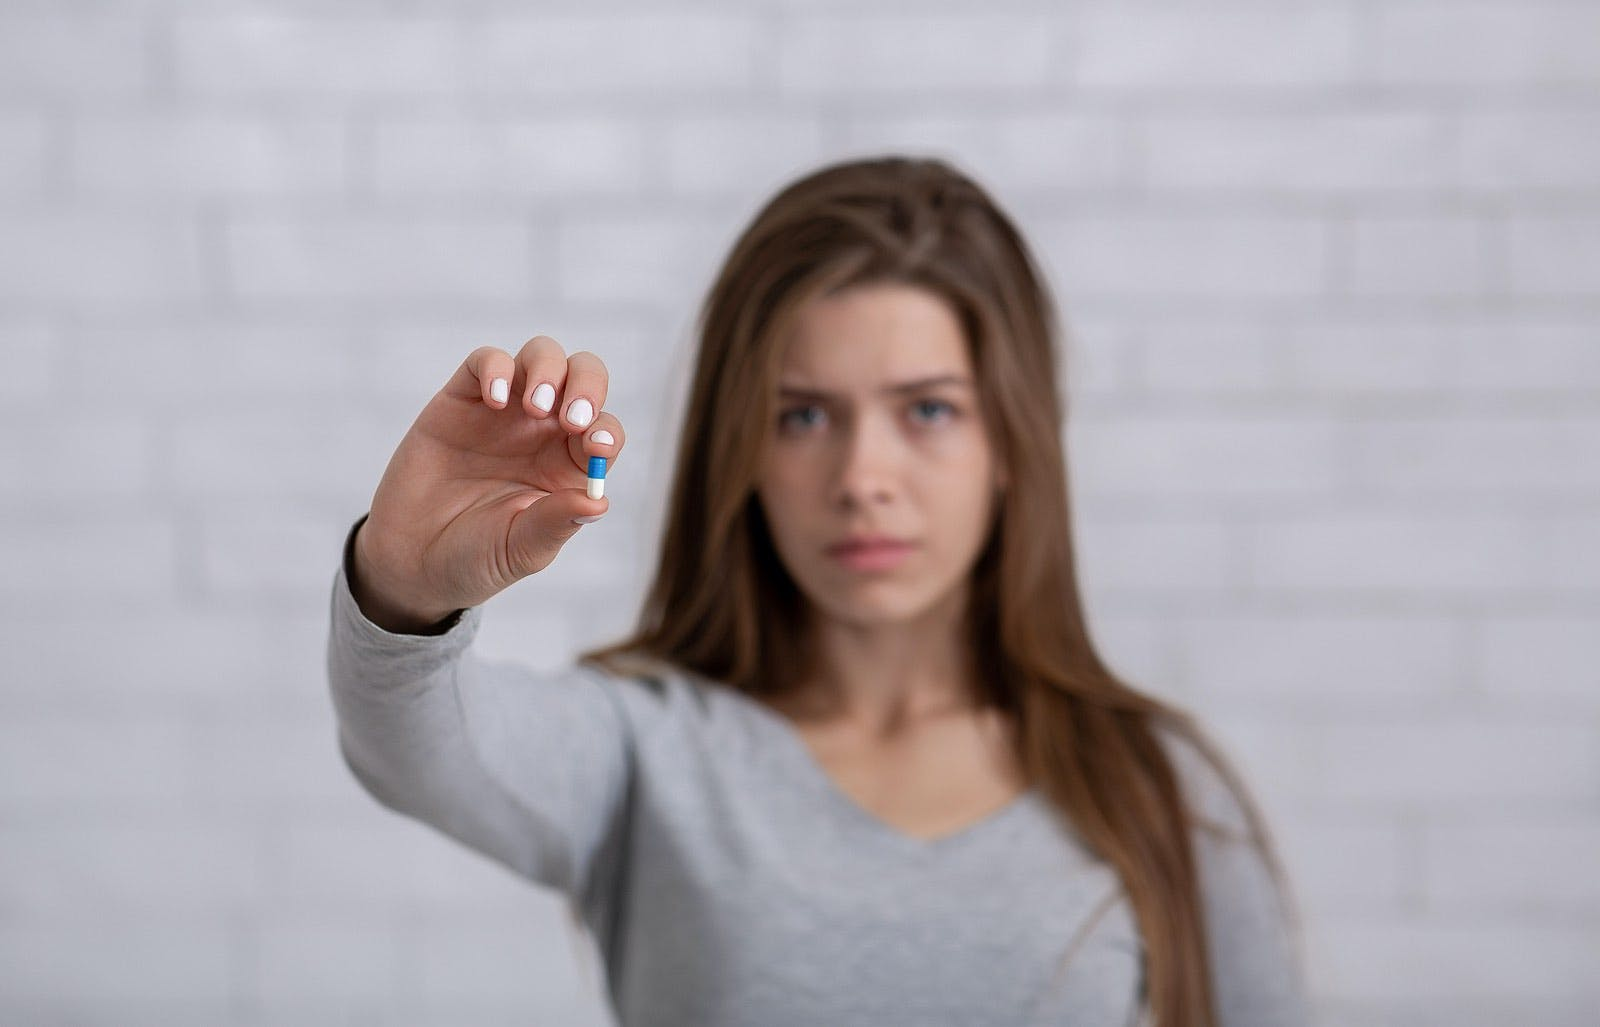 Depressed young lady showing antidepressant or sedative tablet against white brick wall, selective focus. Copy space. Treatment of mental disorders with psychiatric medications